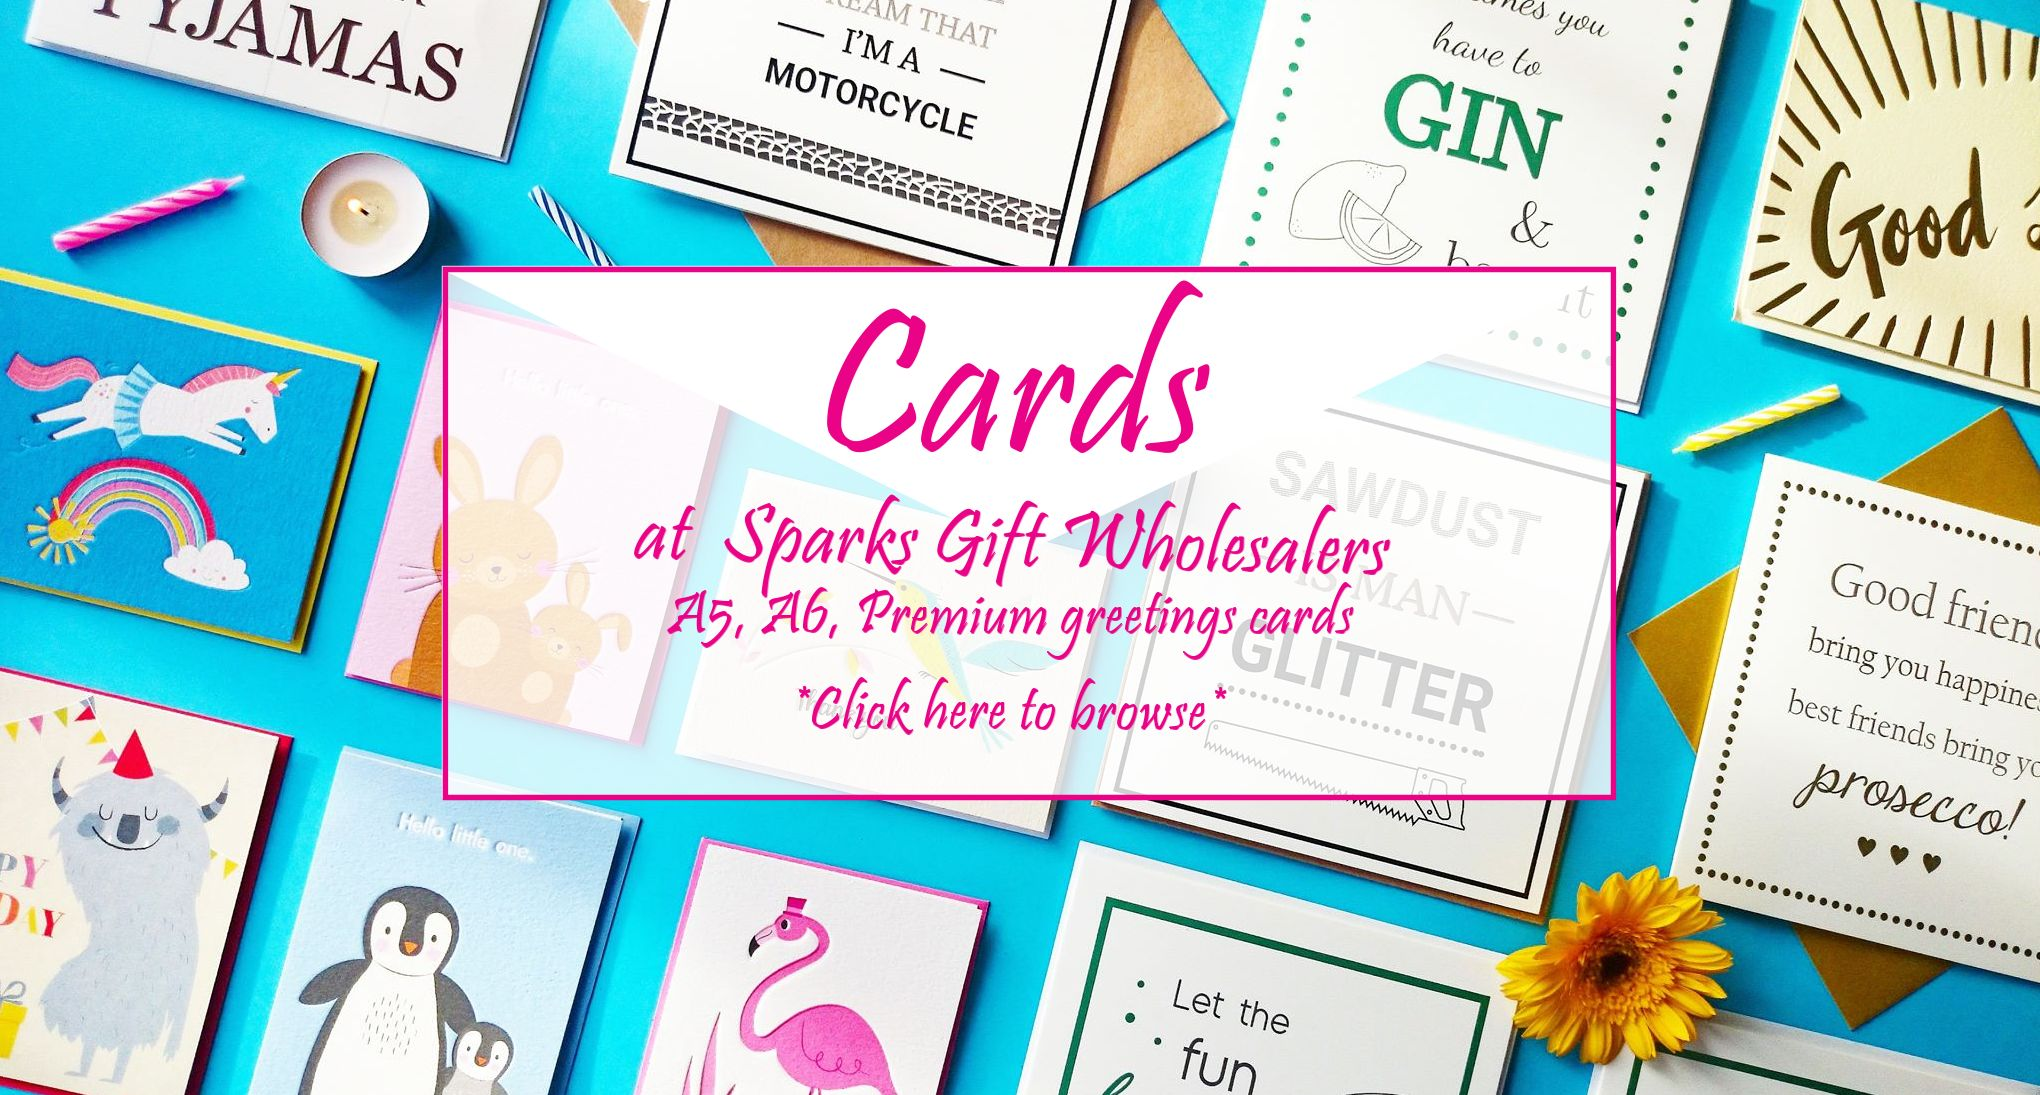 wholesale greetings cards supplier uk low minimum quantities